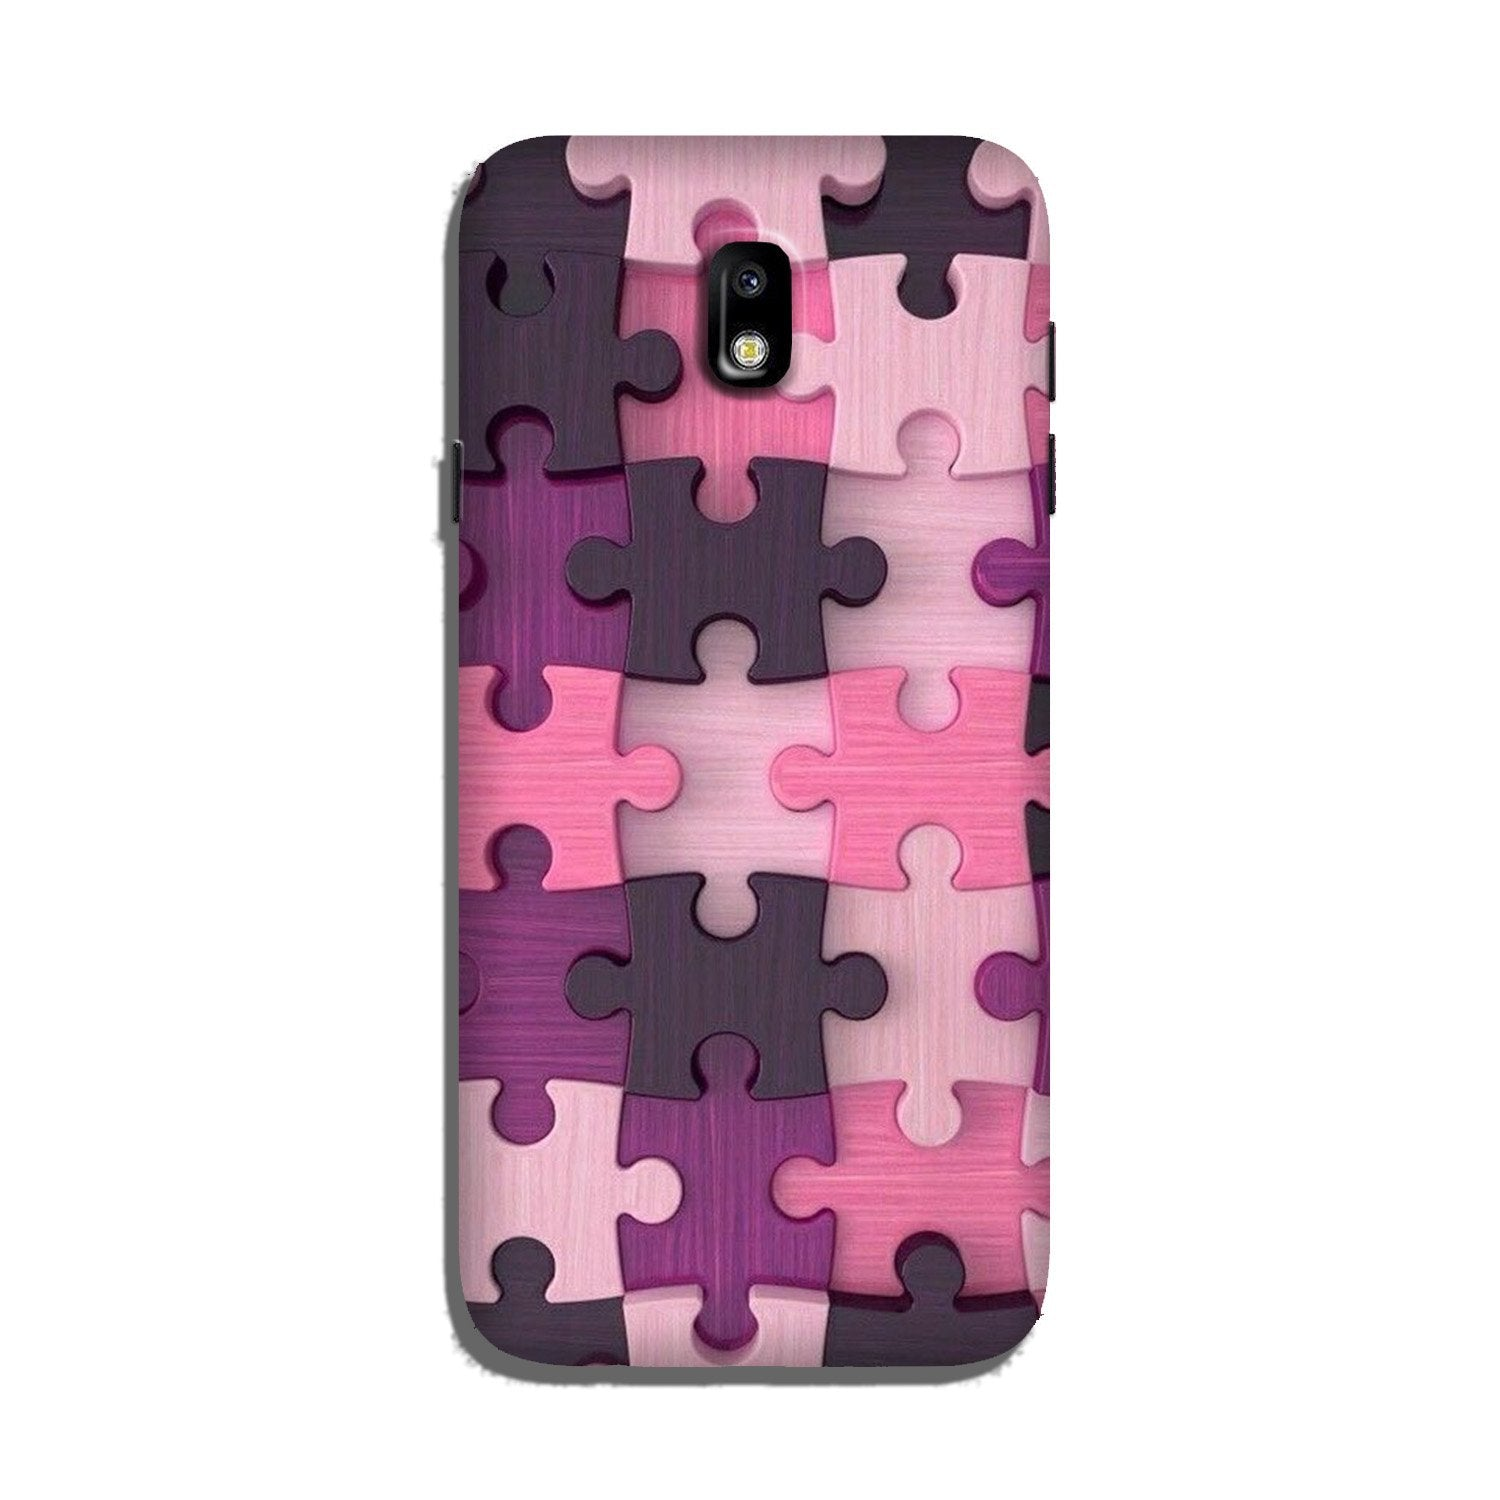 Puzzle Case for Galaxy J7 Pro (Design - 199)